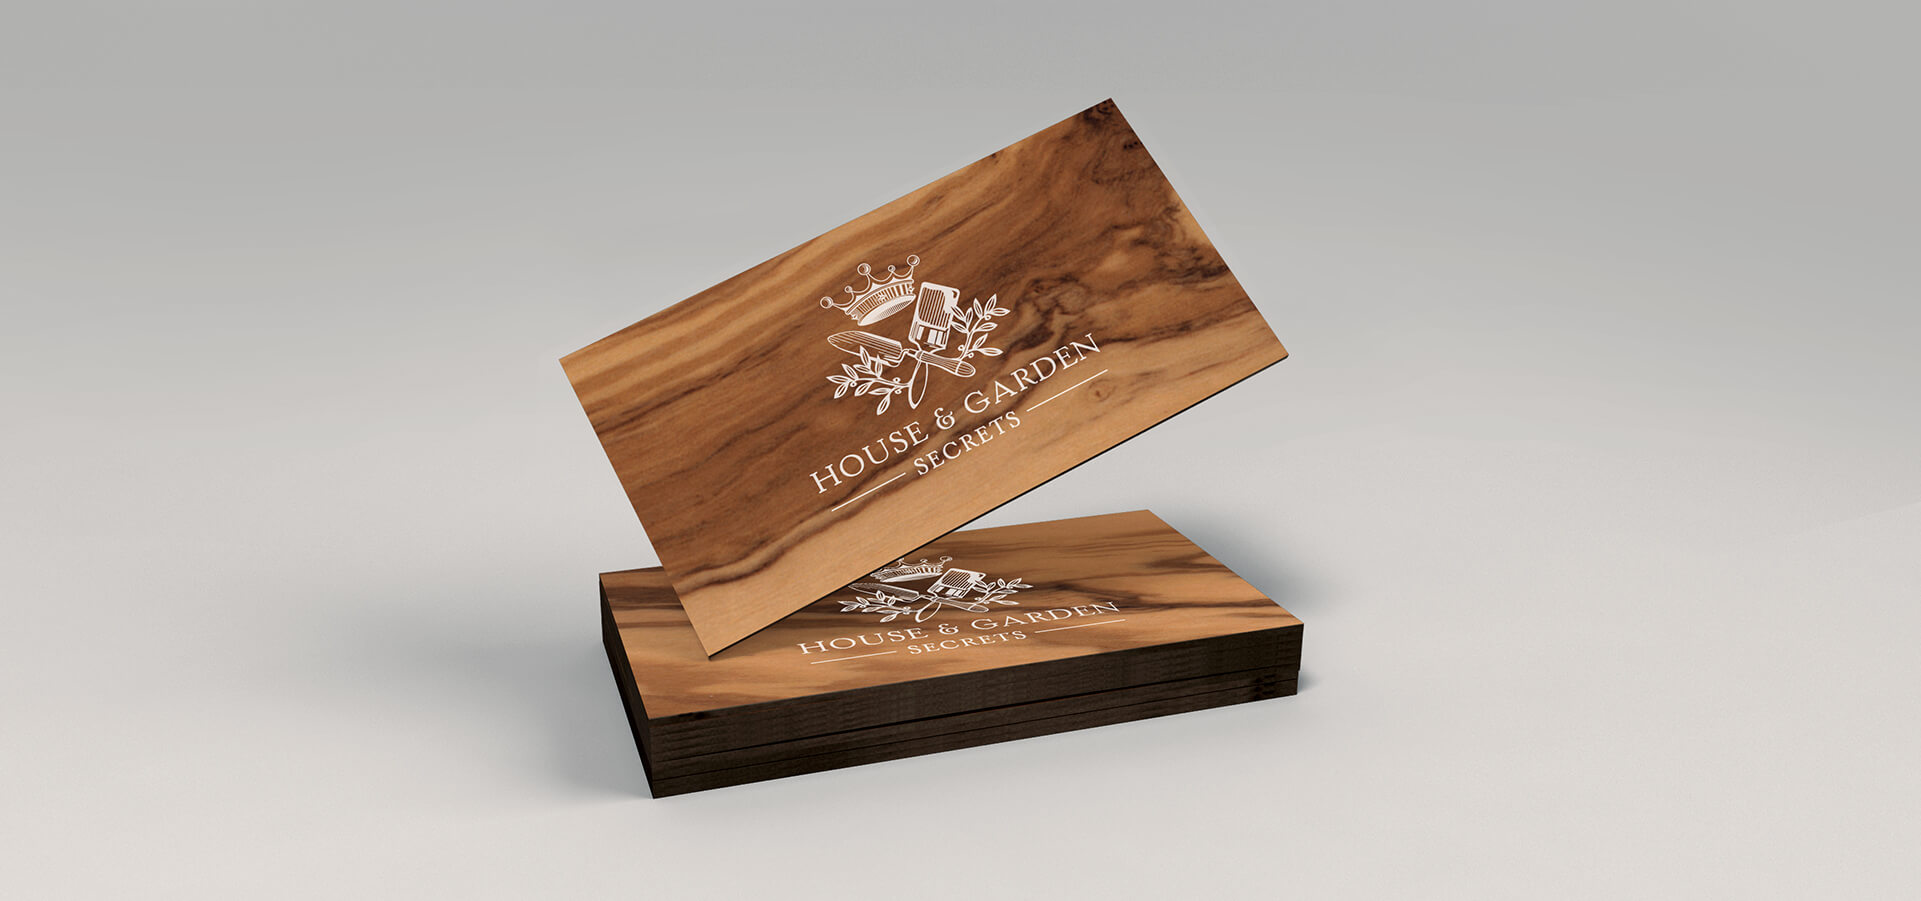 Wood veneer business cards with logo